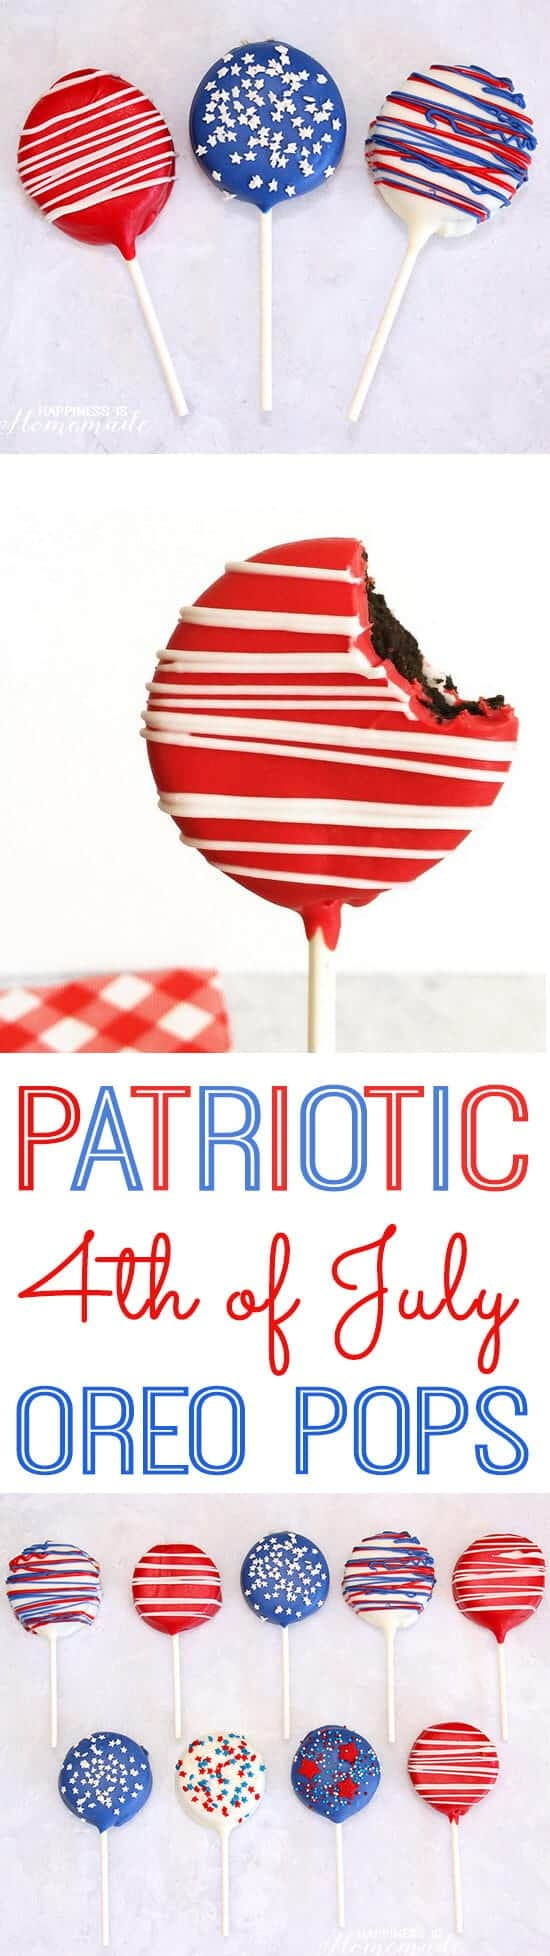 Patriotic Oreo Pops by Happiness is Homemade